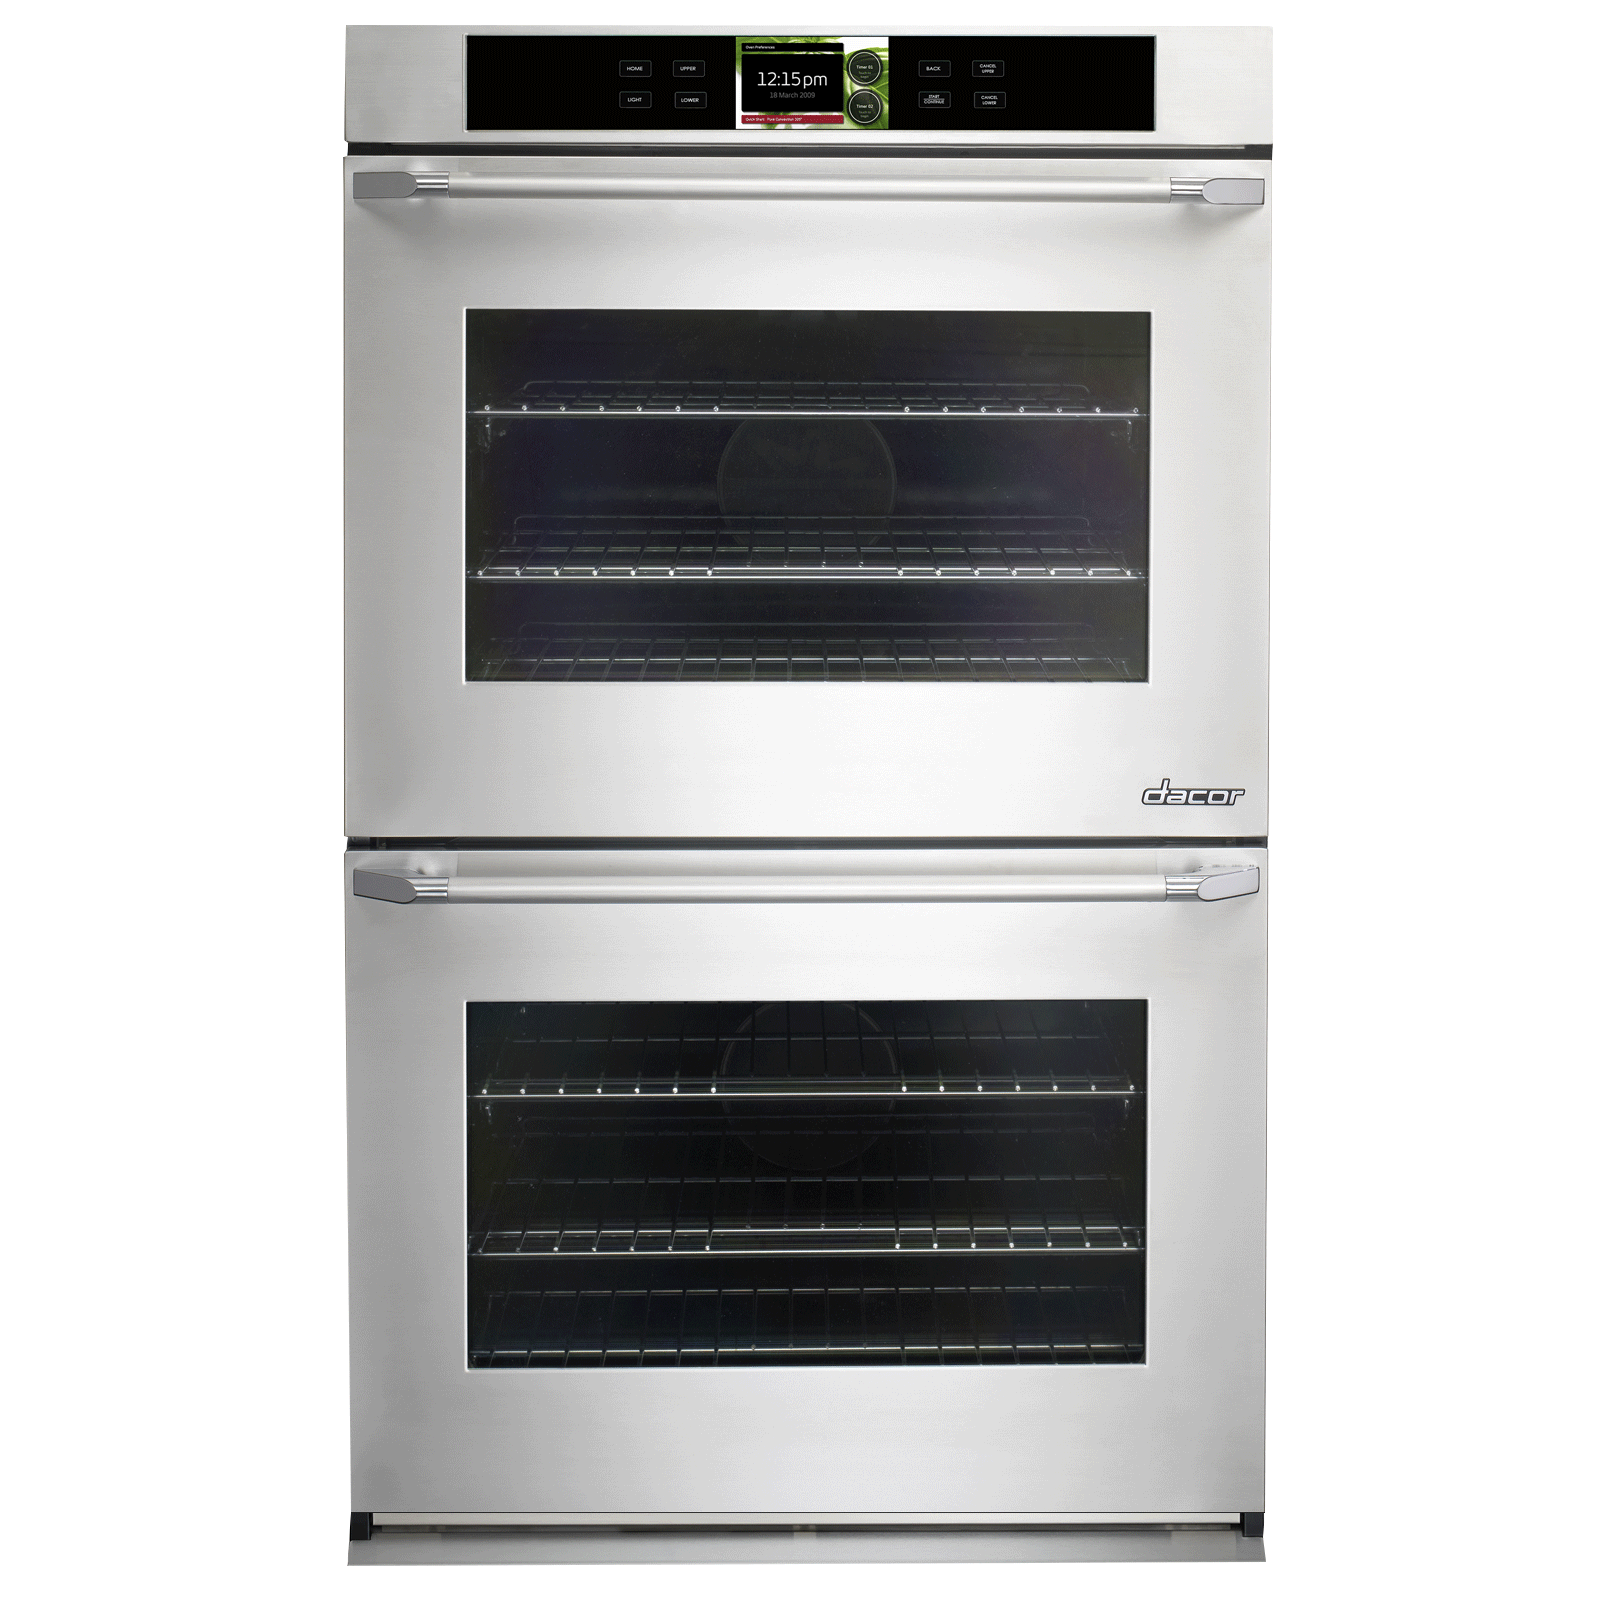 "dacor discovery dyo230ps 30 in iq double wall oven in stainless rh premierappliancestore com Dacor Dual Fuel Ranges Dacor 48"" Range"